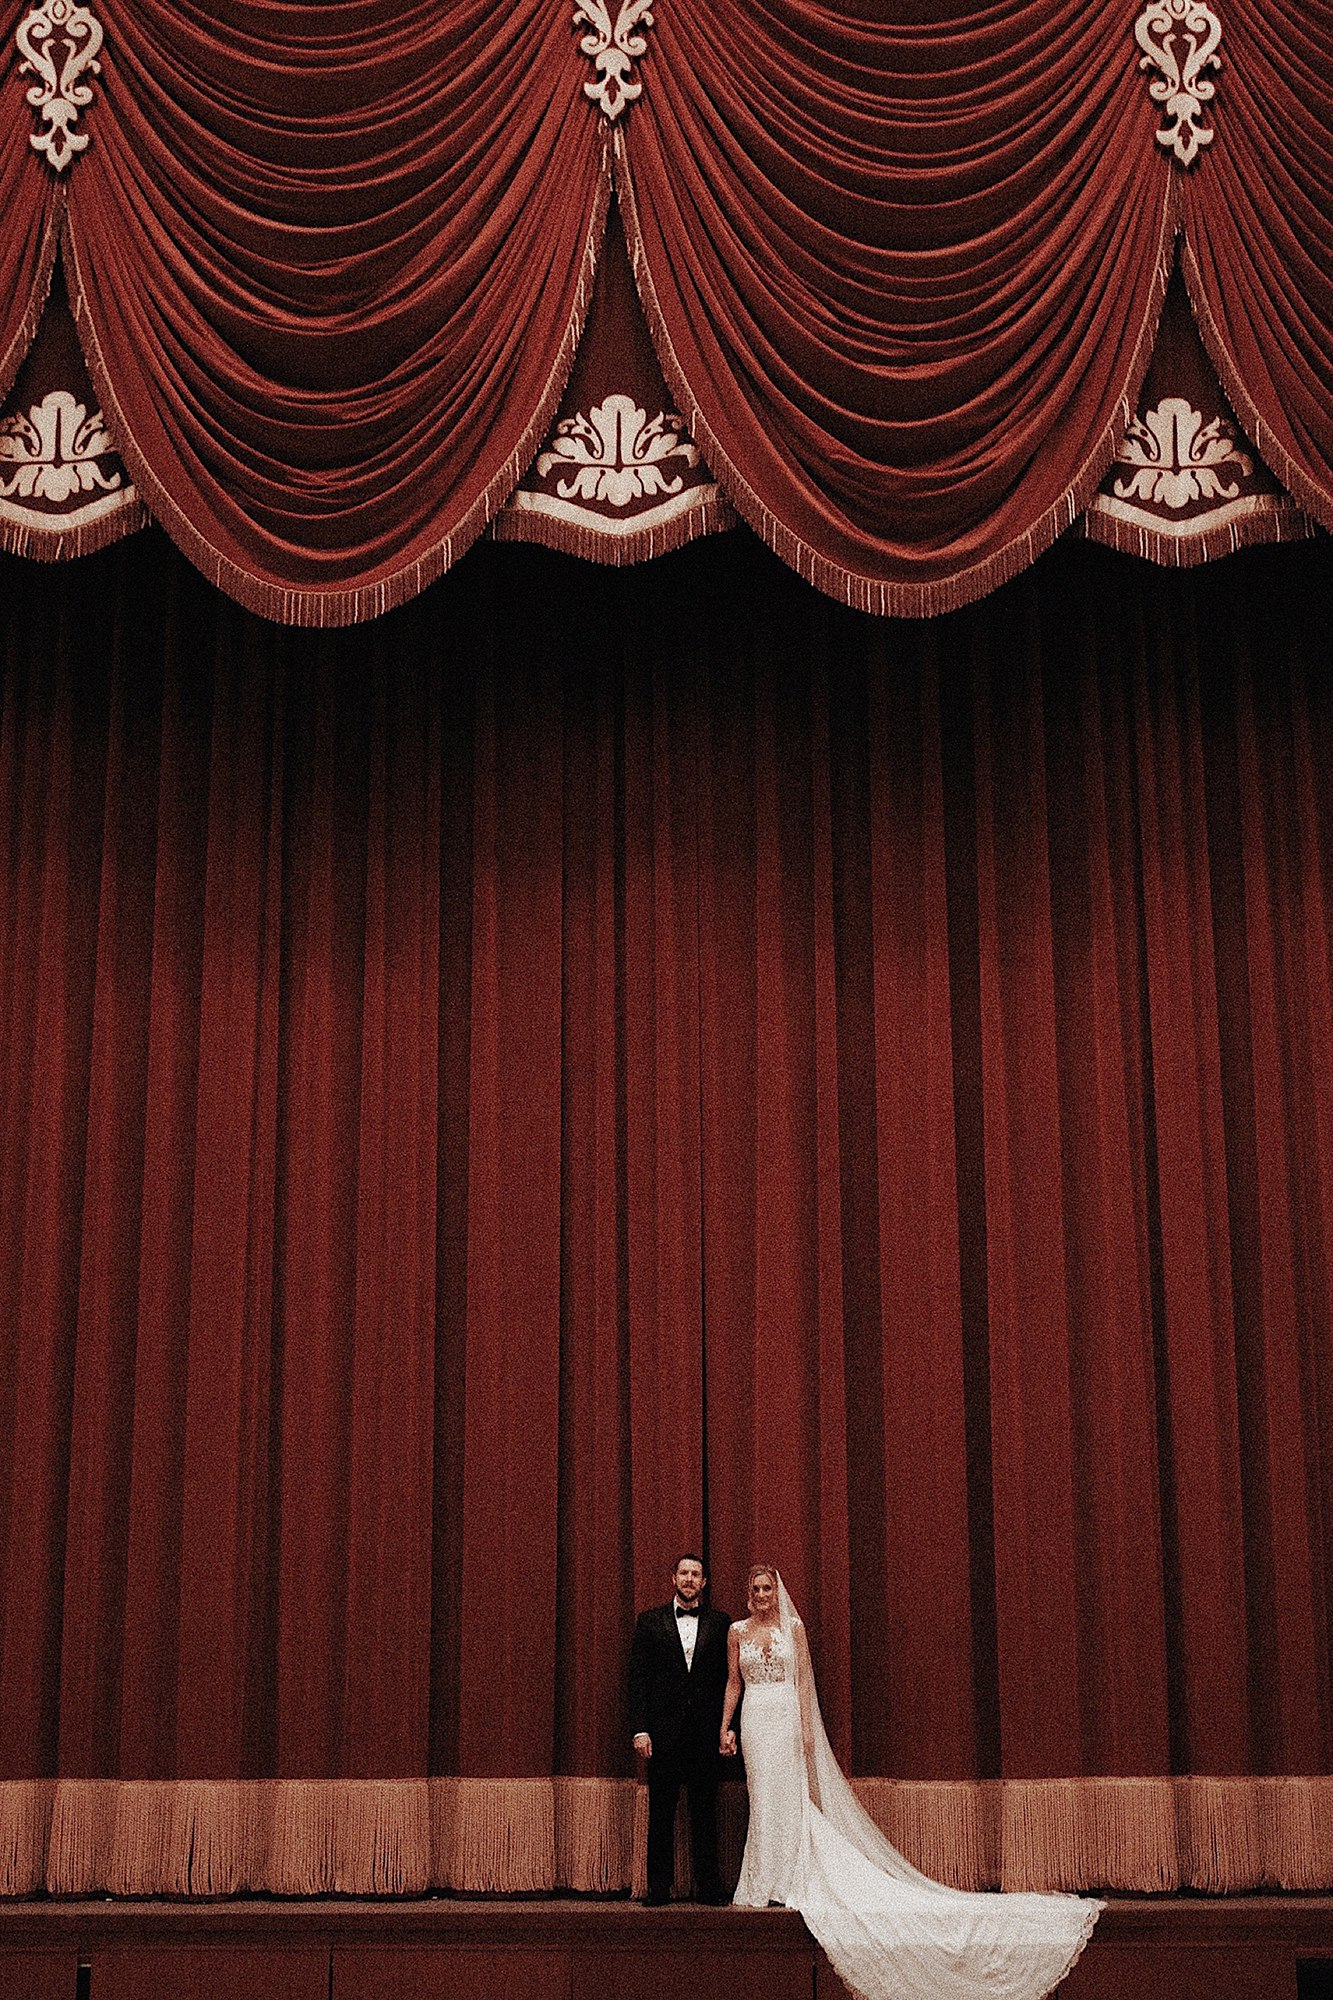 wes Anderson wedding bride and groom standing dramatically in historic theater